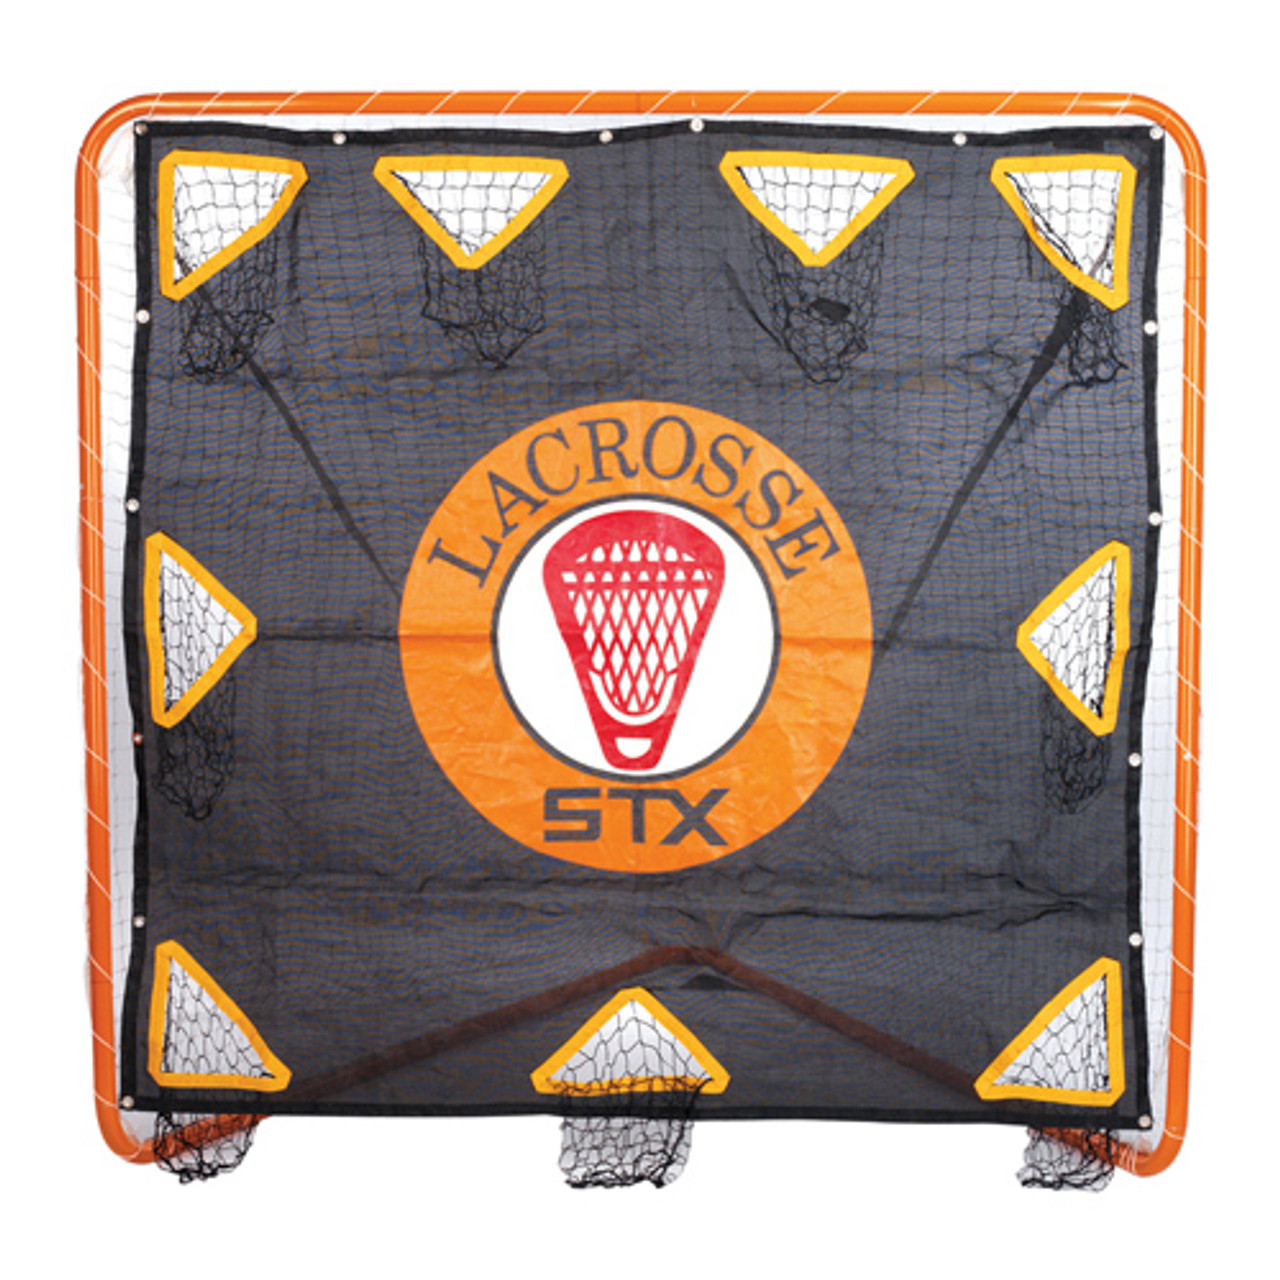 STX Advanced Lacrosse Goal Targets